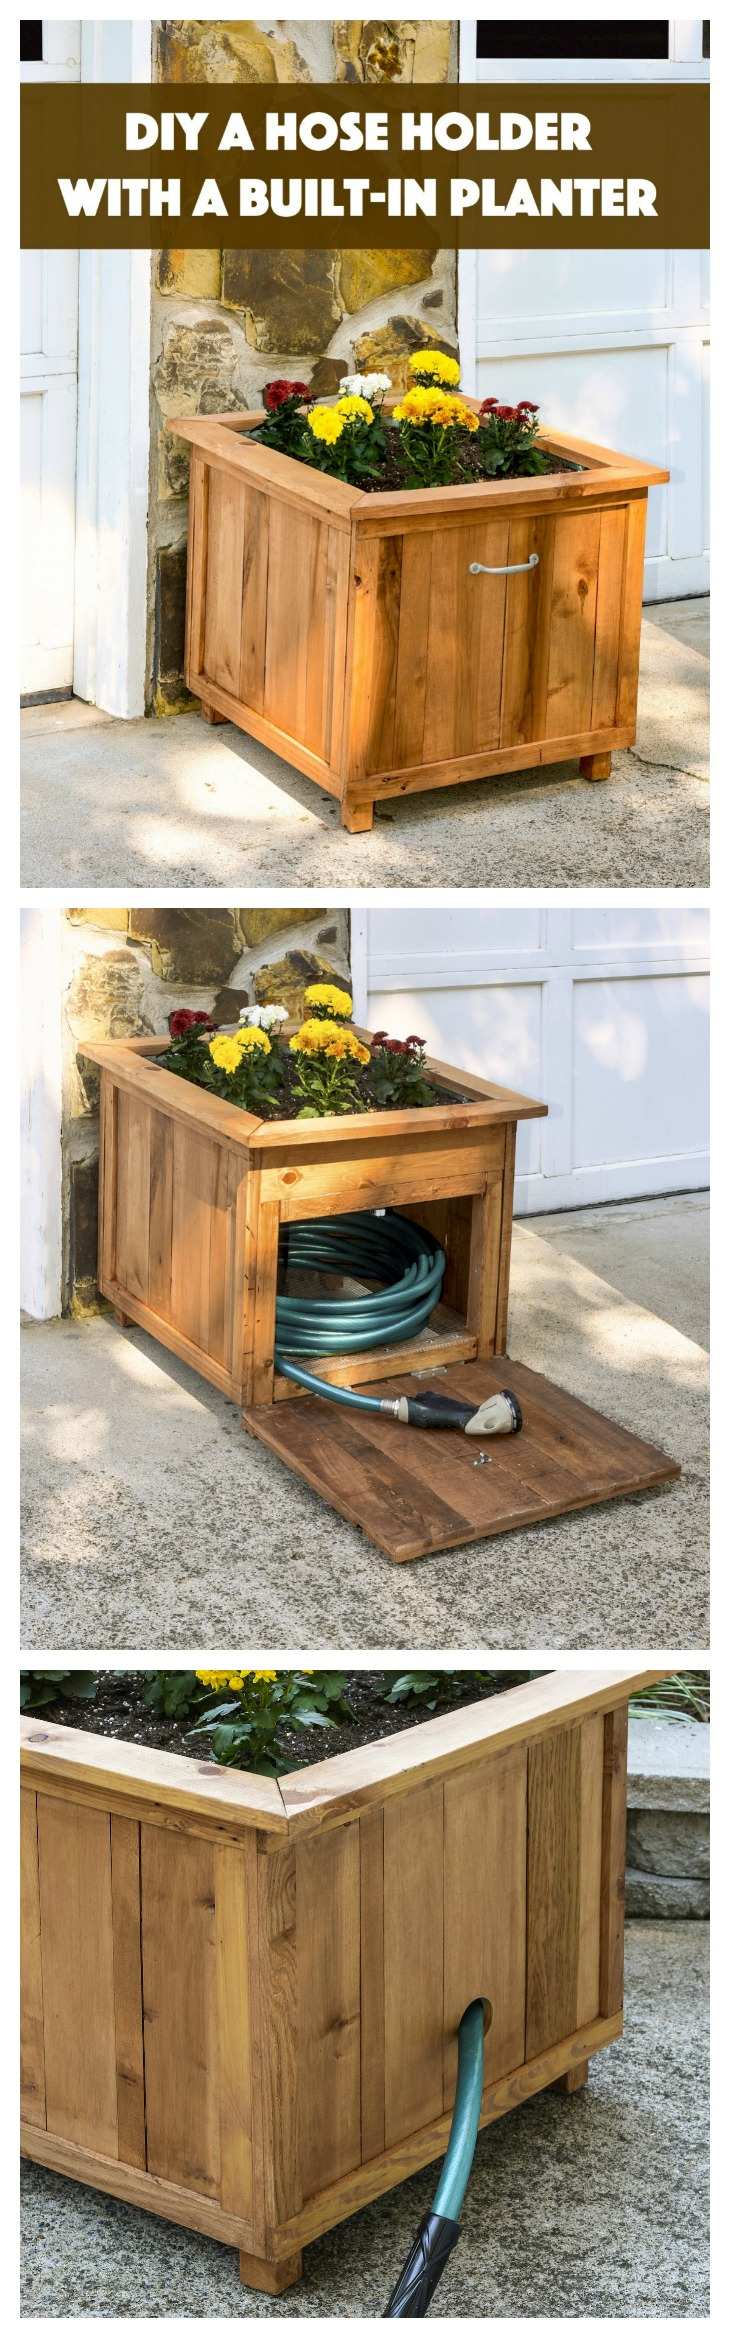 Diy hose hiding outdoor planter an easy project for for Outdoor wood projects ideas